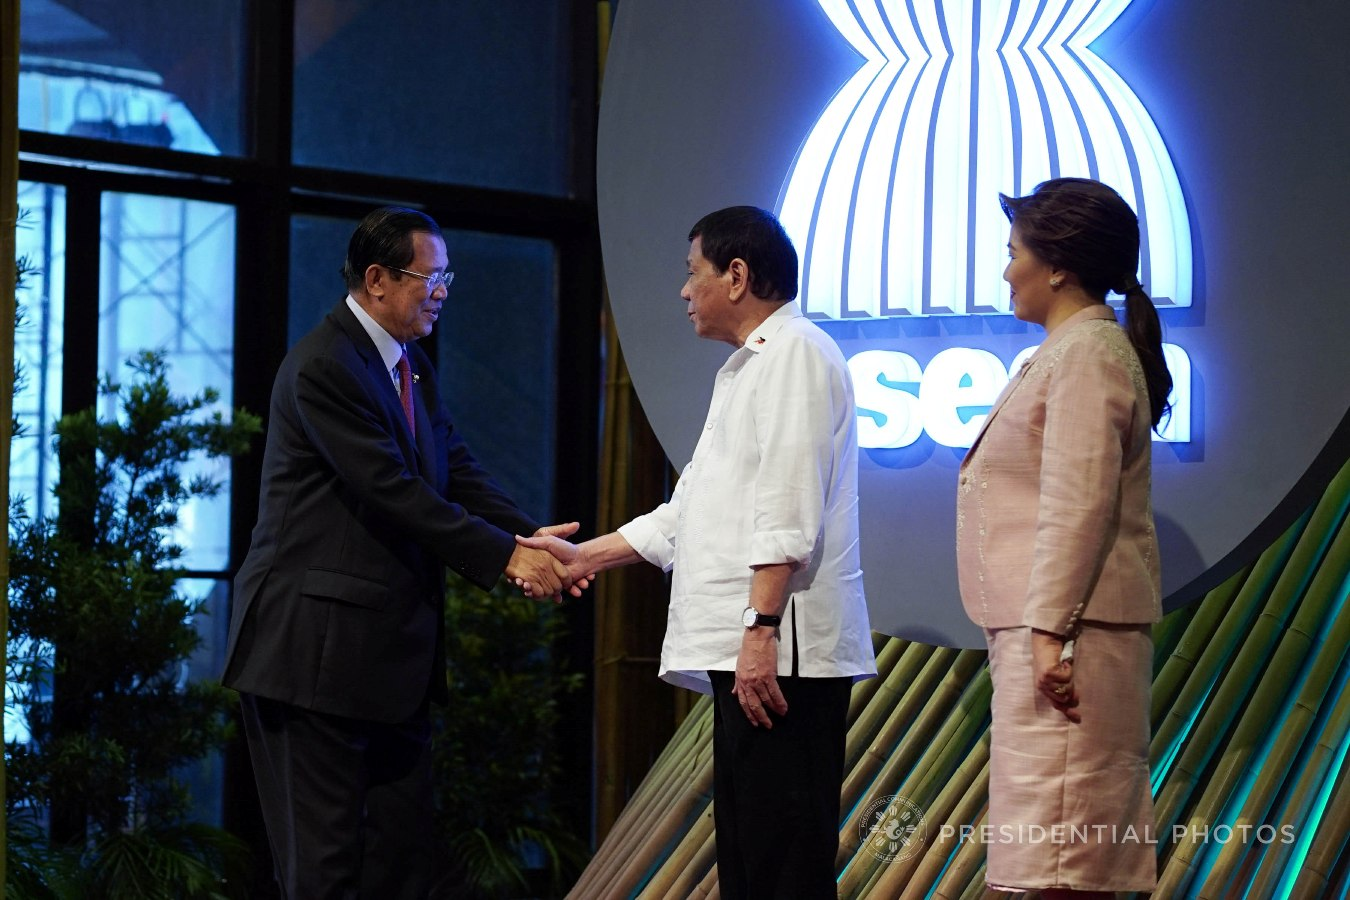 President Rodrigo Roa Duterte and his partner Honeylet welcome Cambodia Prime Minister Hun Sen to the opening of the 31st Association of Southeast Asian Nations (ASEAN) Summit and Related Summits at the Cultural Center of the Philippines in Pasay City on November 13, 2017. KING RODRIGUEZ/PRESIDENTIAL PHOTO